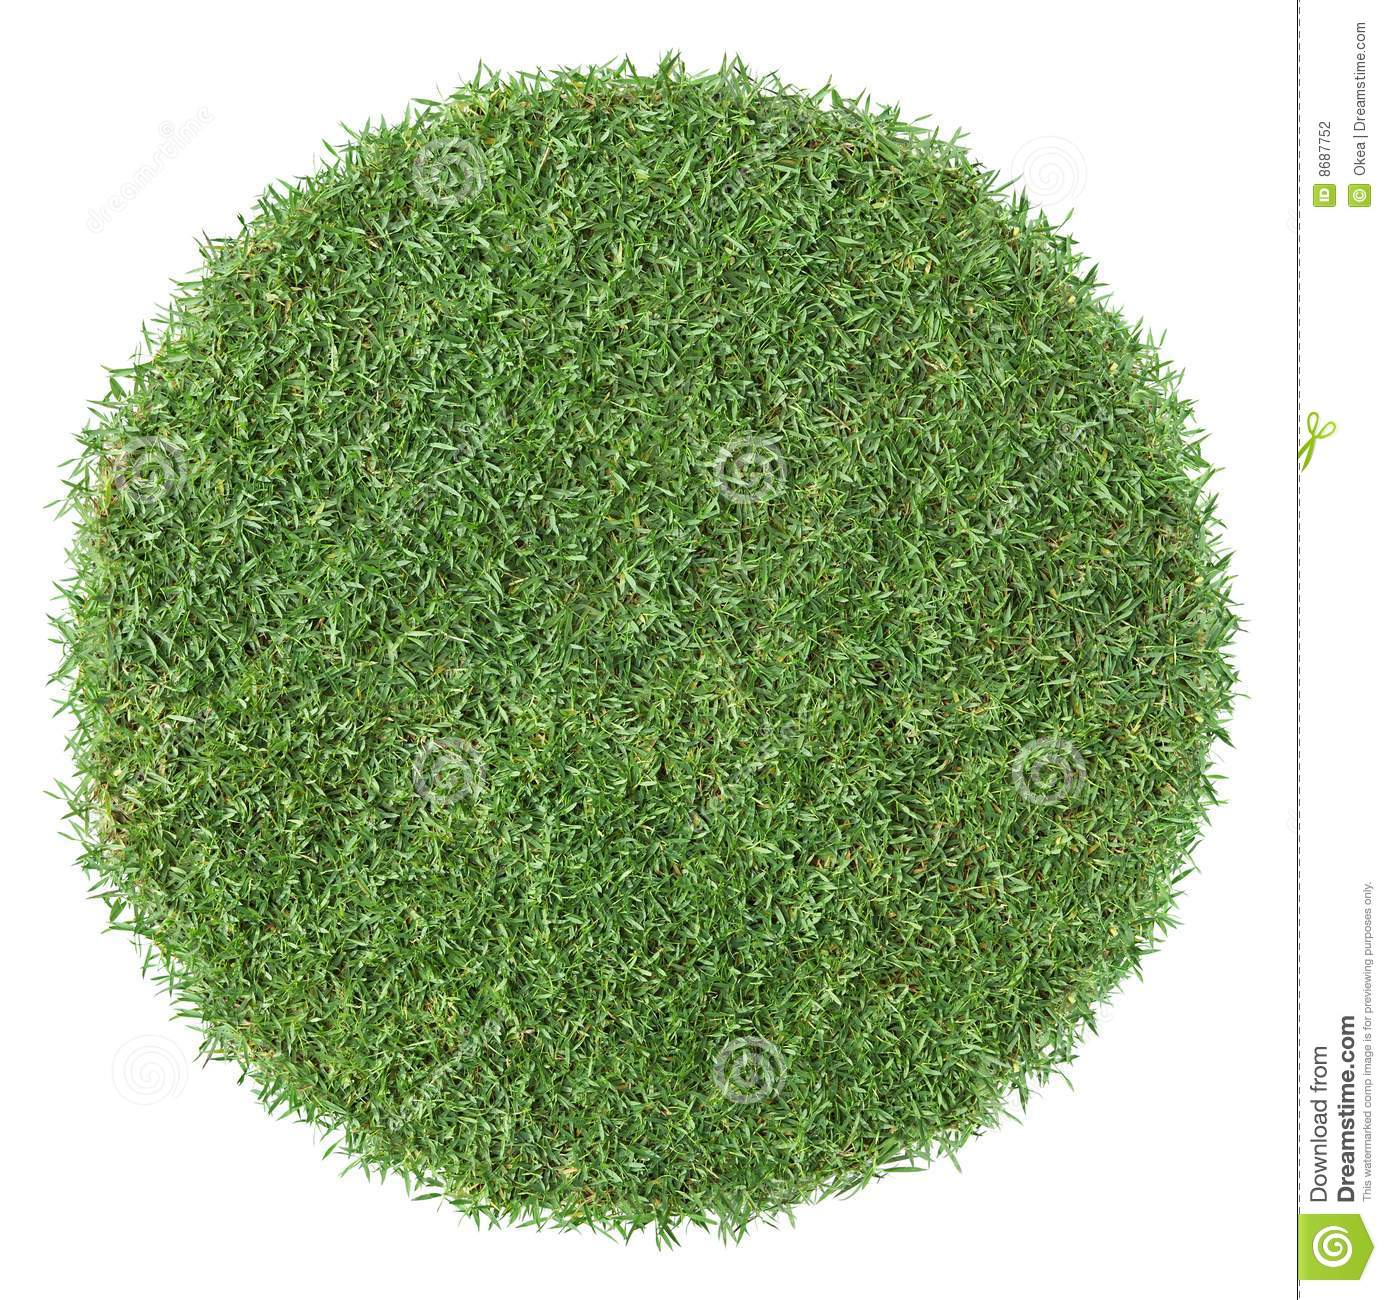 Forme ronde d herbe